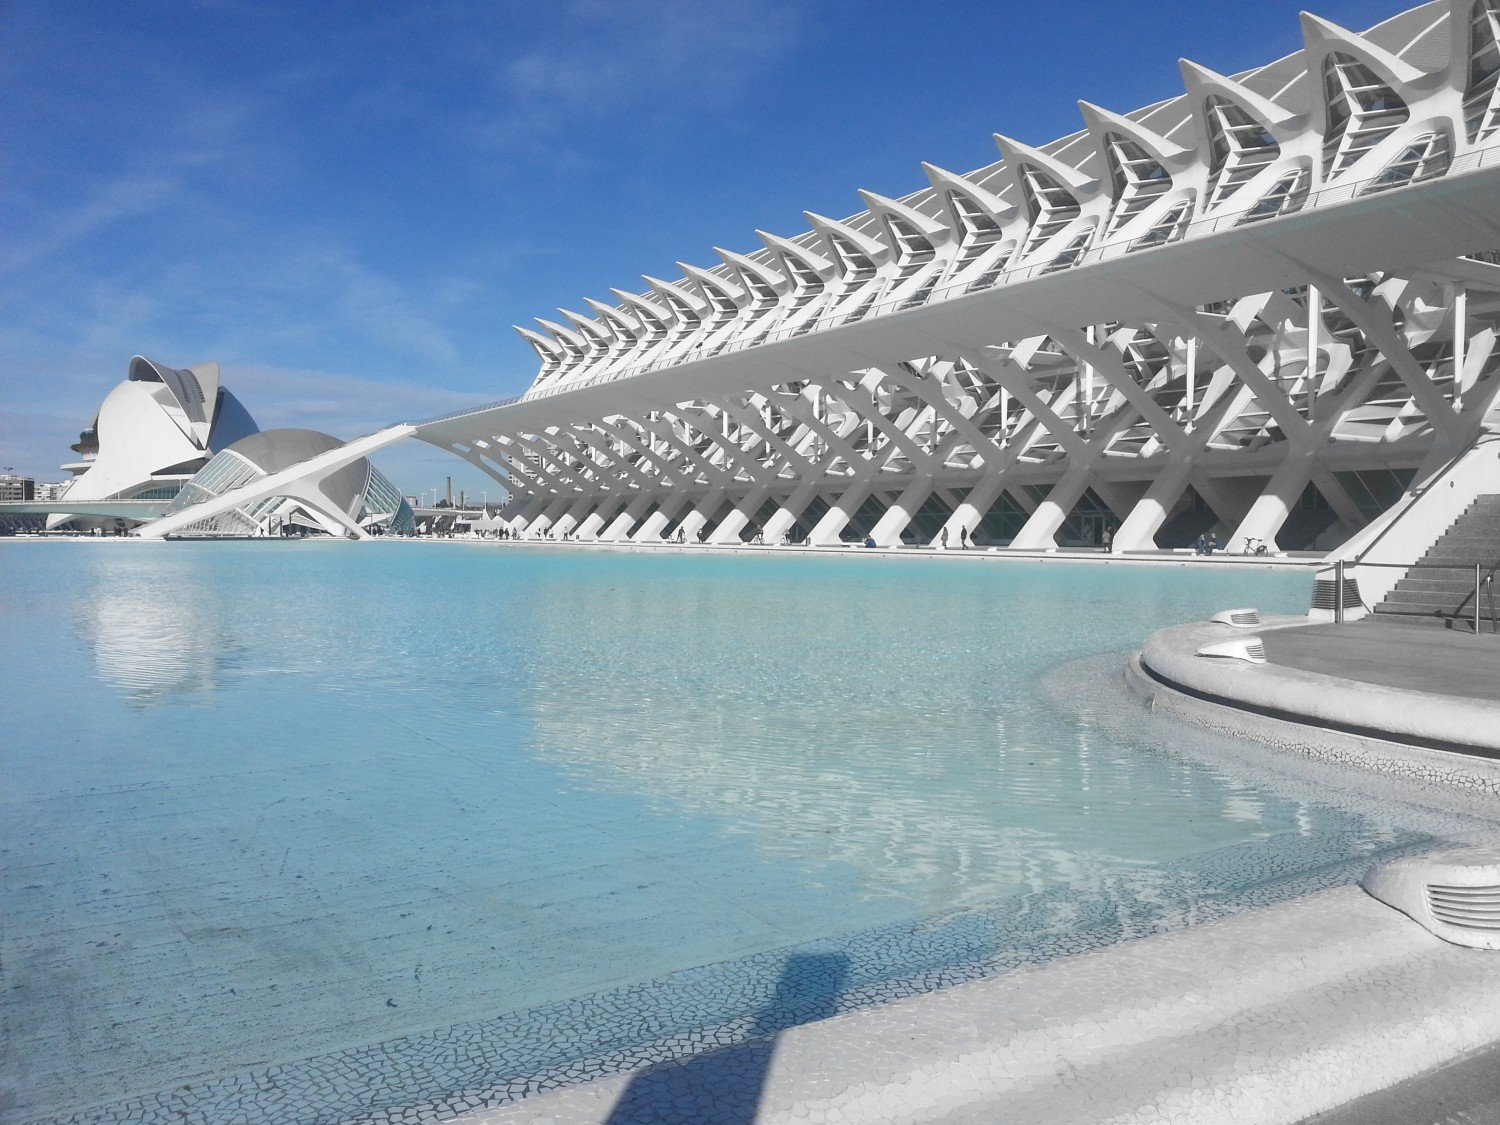 Forget Paris, my heart belongs to Valencia